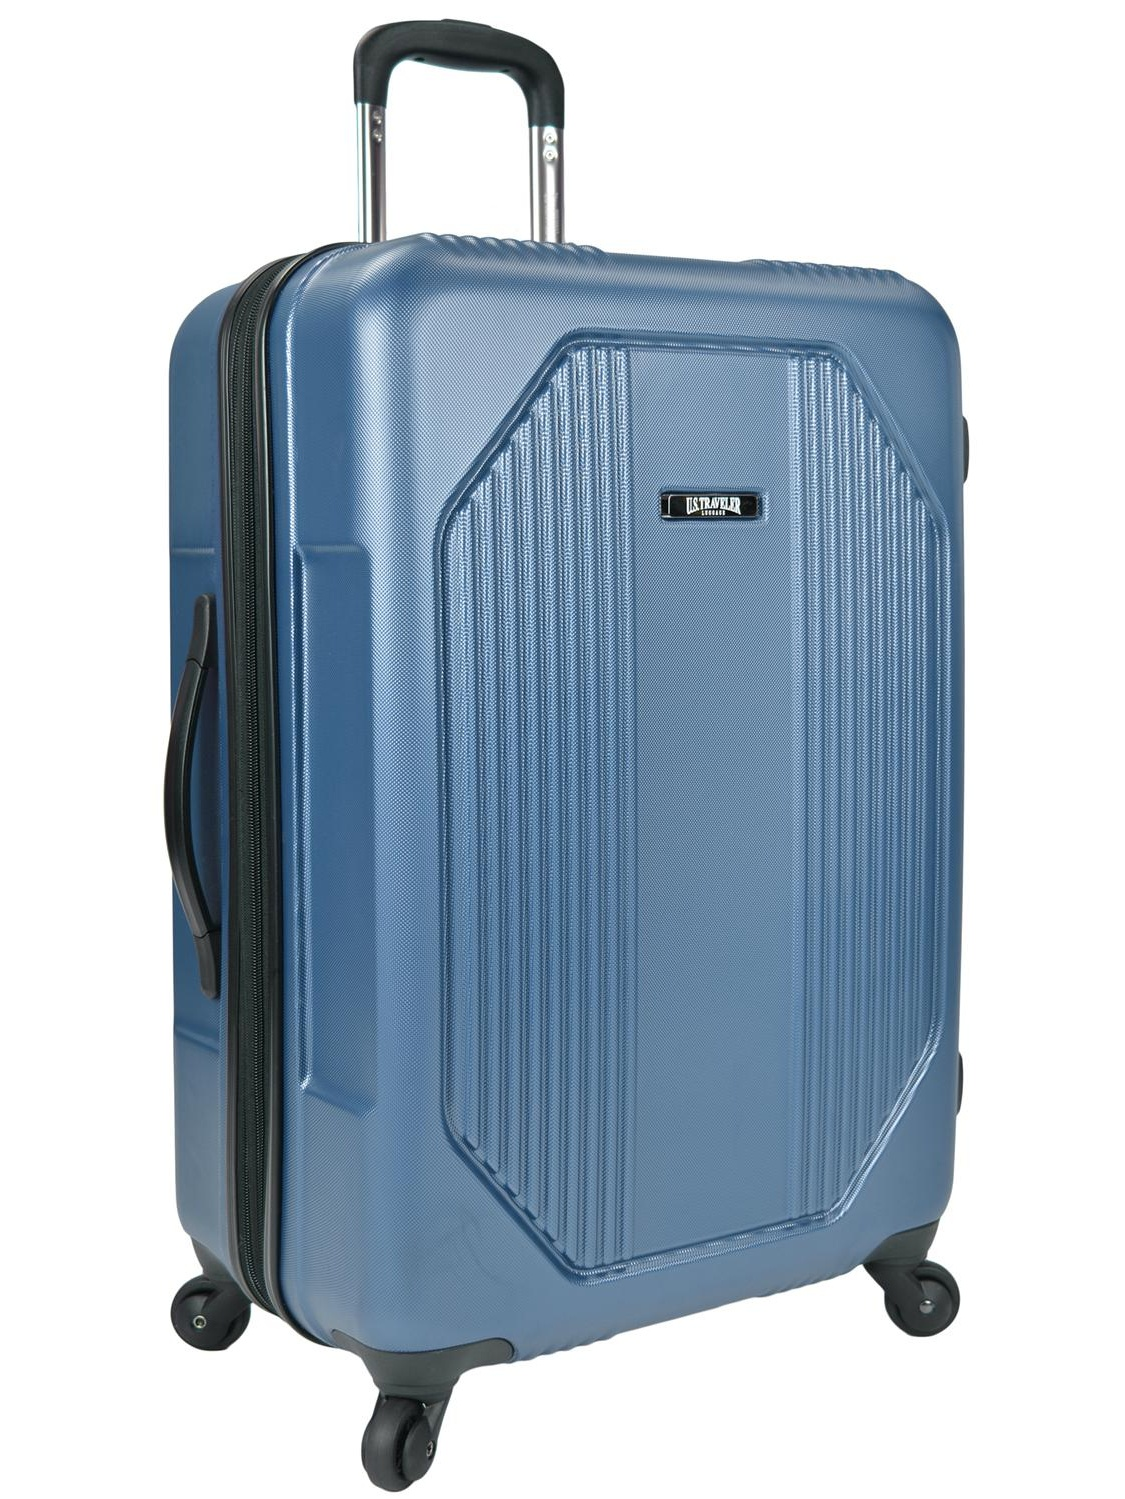 Bloomington 27 Spinner Luggage, Multiple Colors